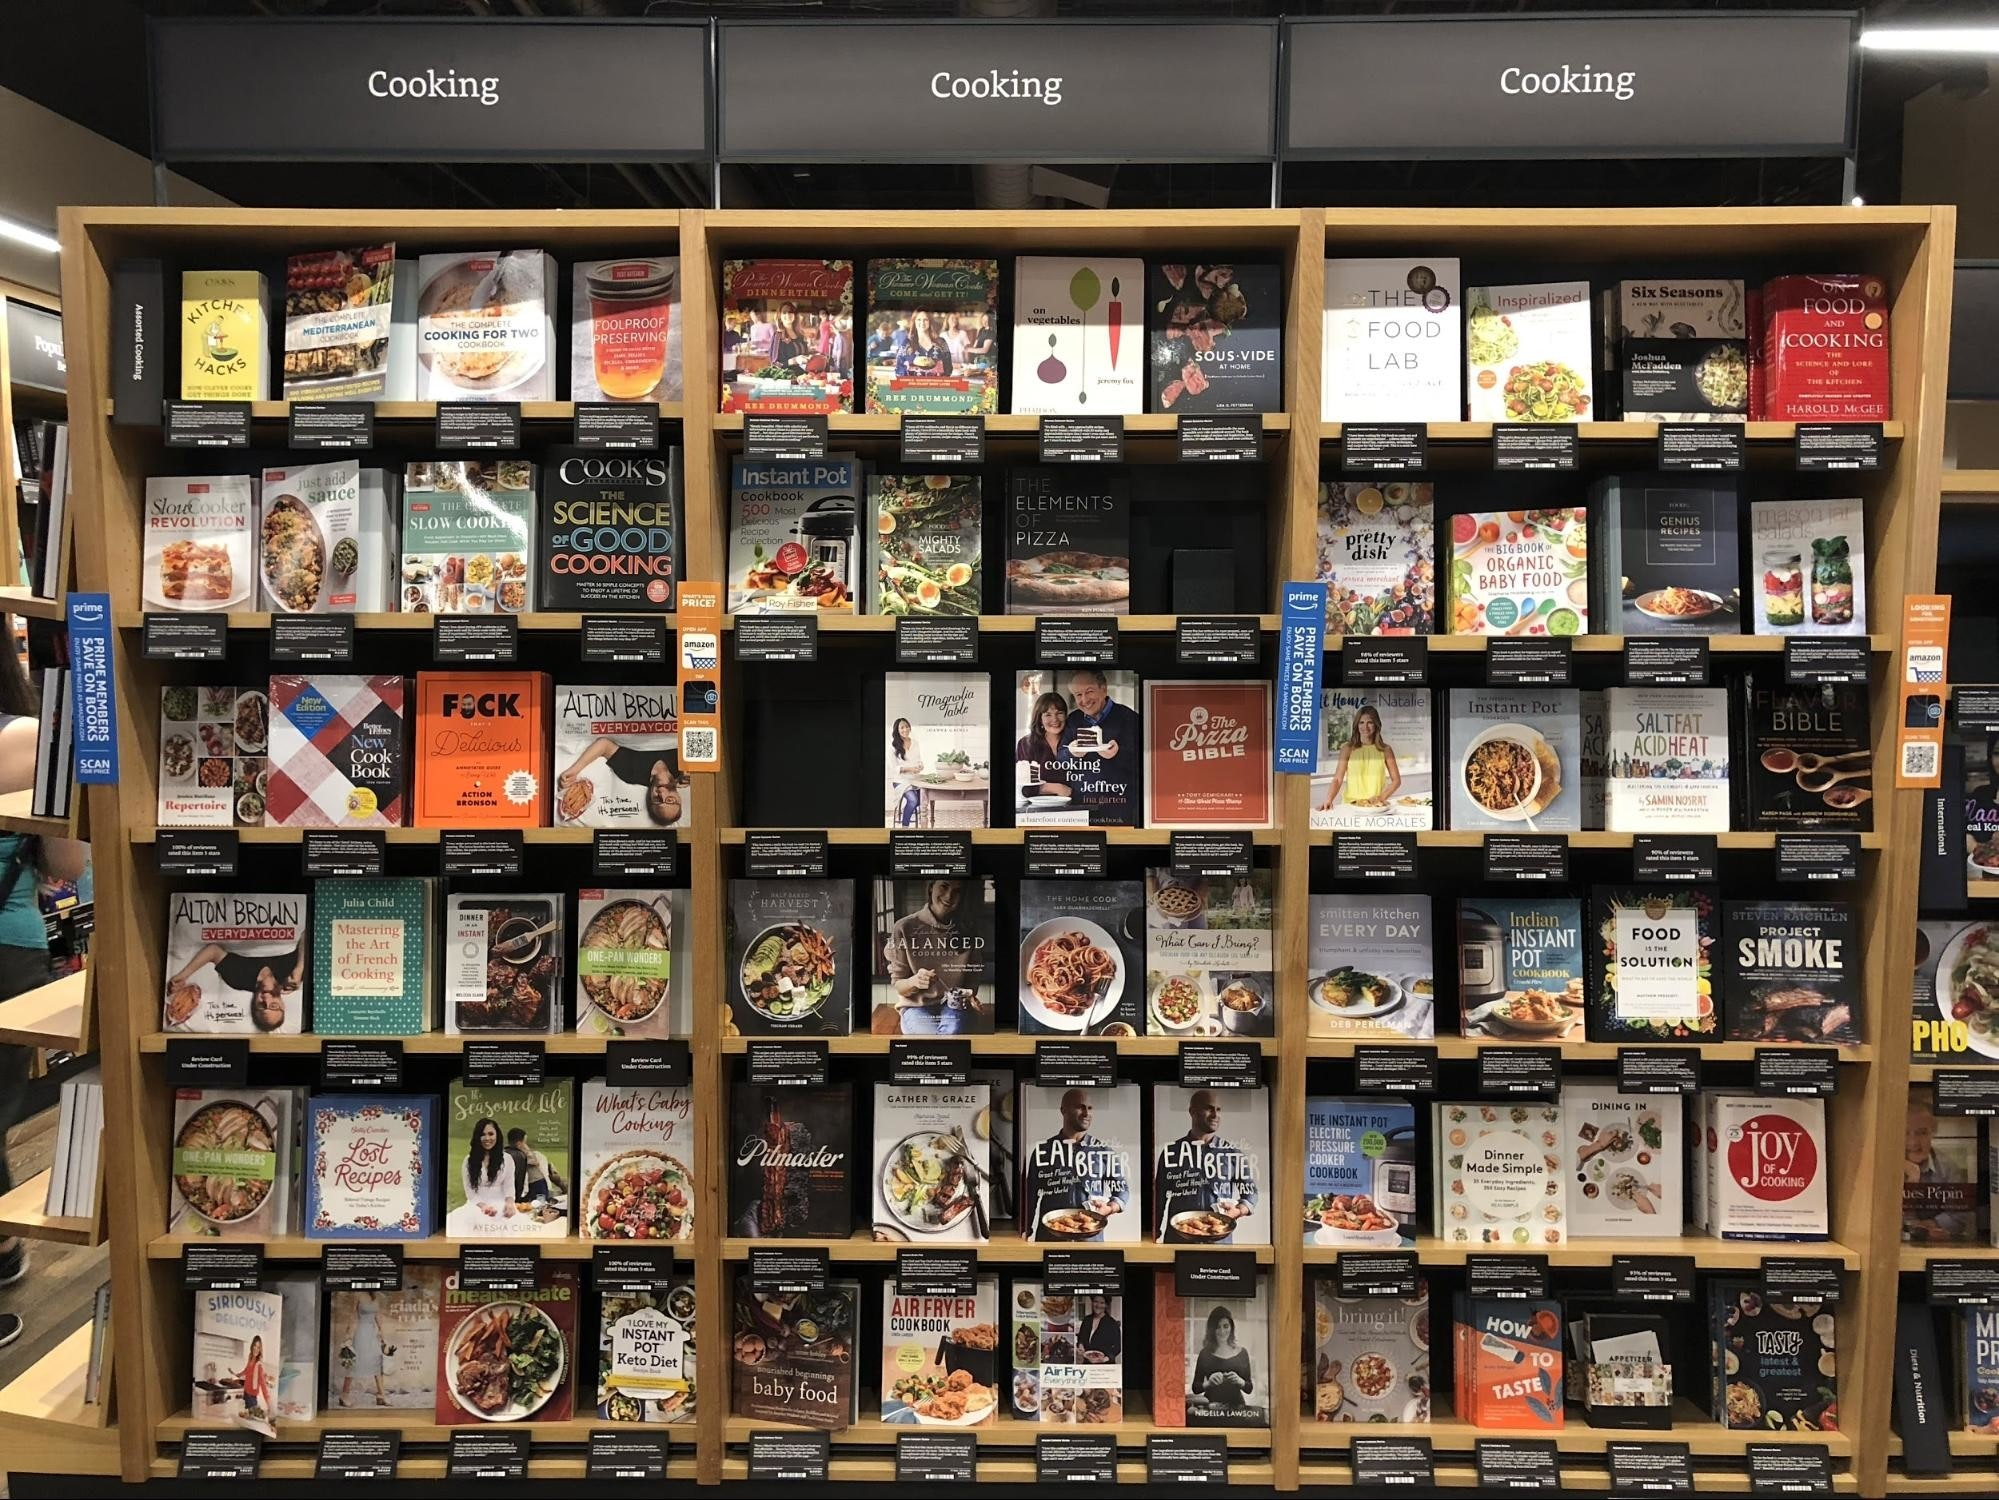 Display case, Convenience food, Inventory, Convenience, Product, Food, Bookselling, inventory, product, inventory, retail, display case, convenience food, product, liquor store, bookselling